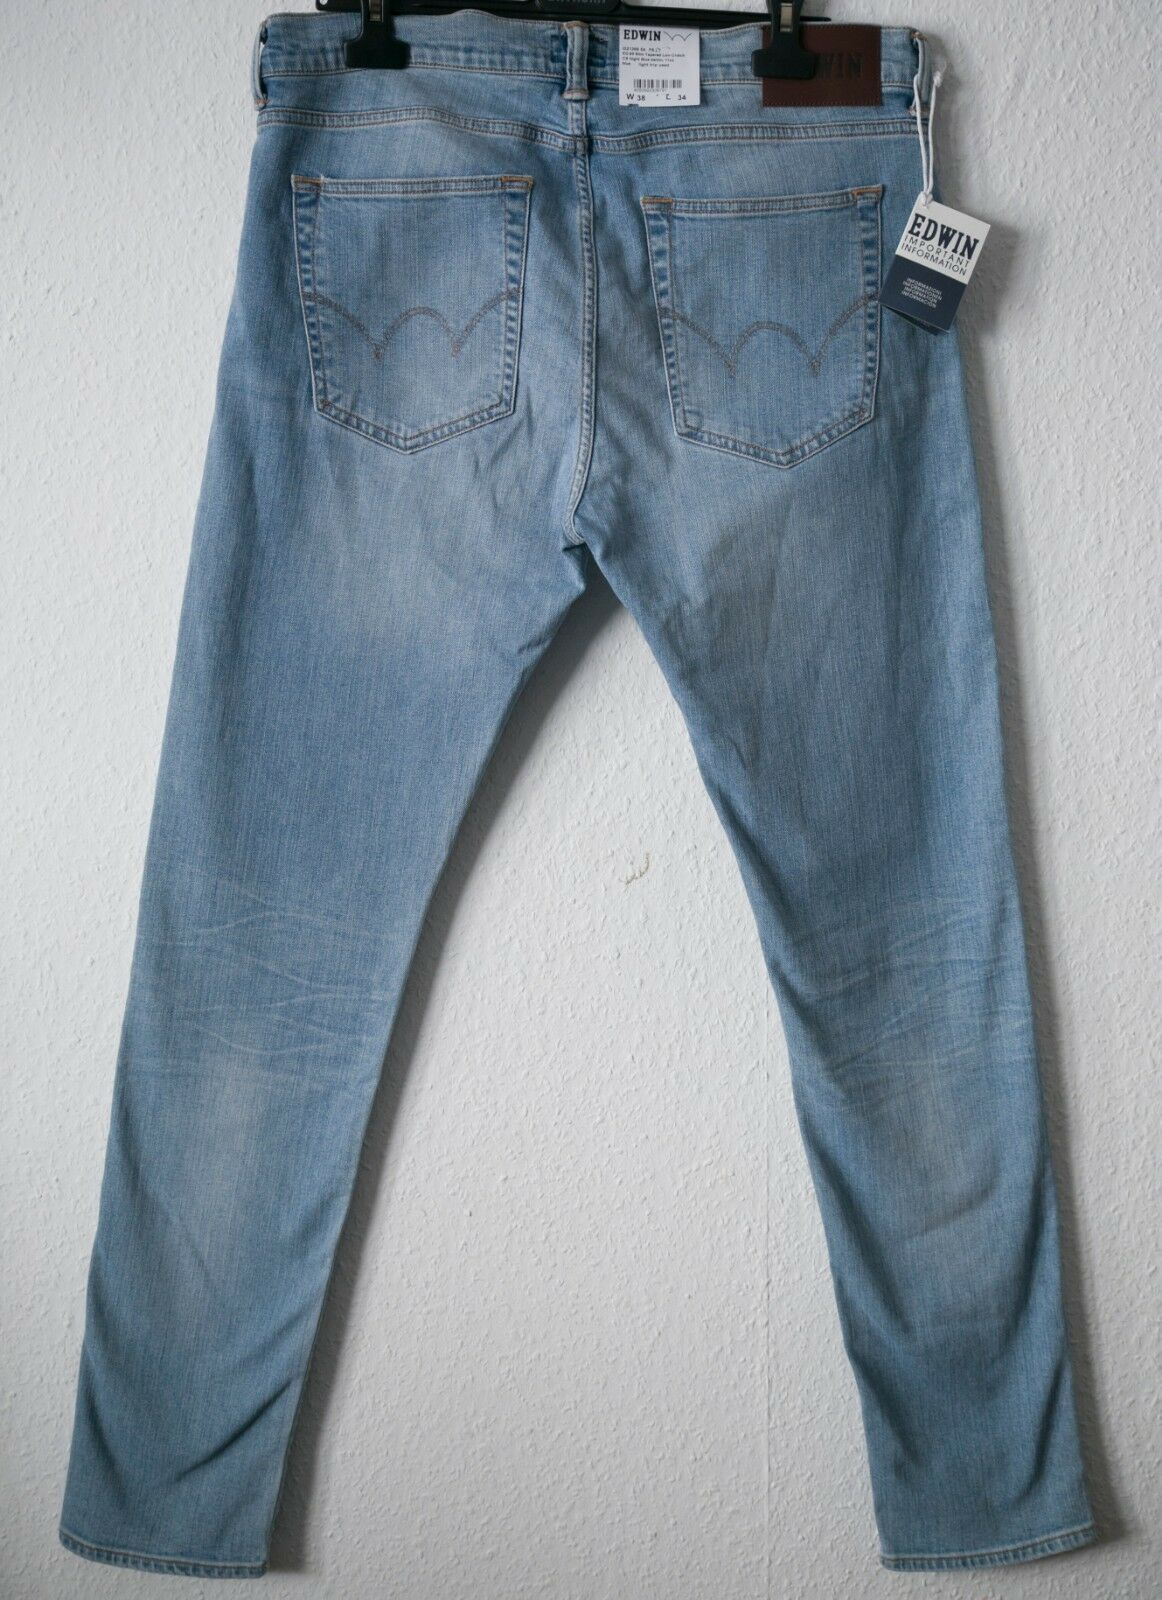 3e9035adbe549 EDWIN Jeans ED-85 Slim Tapered Low credch light trip used 11 oz blue Gr.  DSQUARED Solid bluee Denim Cotton Mens ...